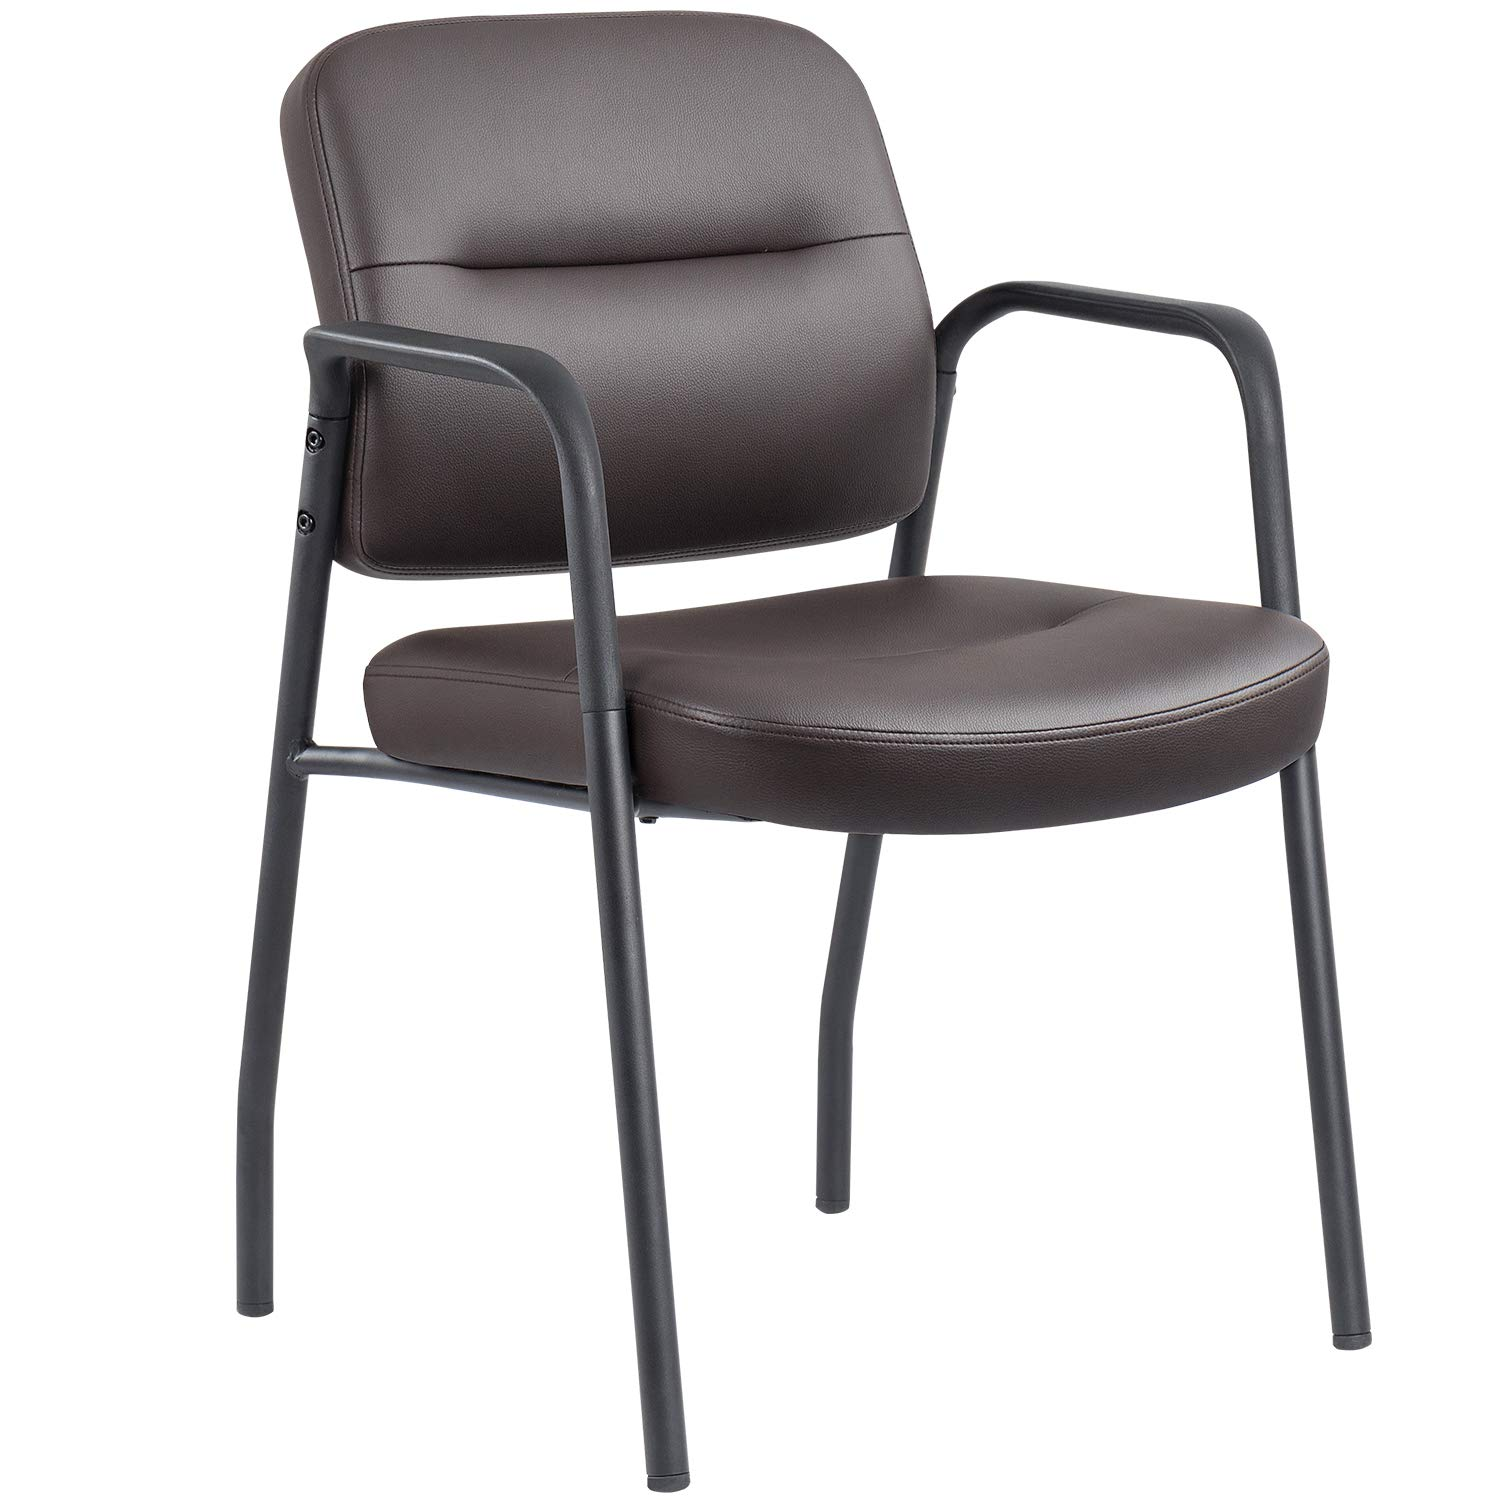 JUMMICO Guest Chair Leather Executive Side Reception Chair Office Waiting Room Chair with Frame Finish Ergonomic Lumbar Support (Black)